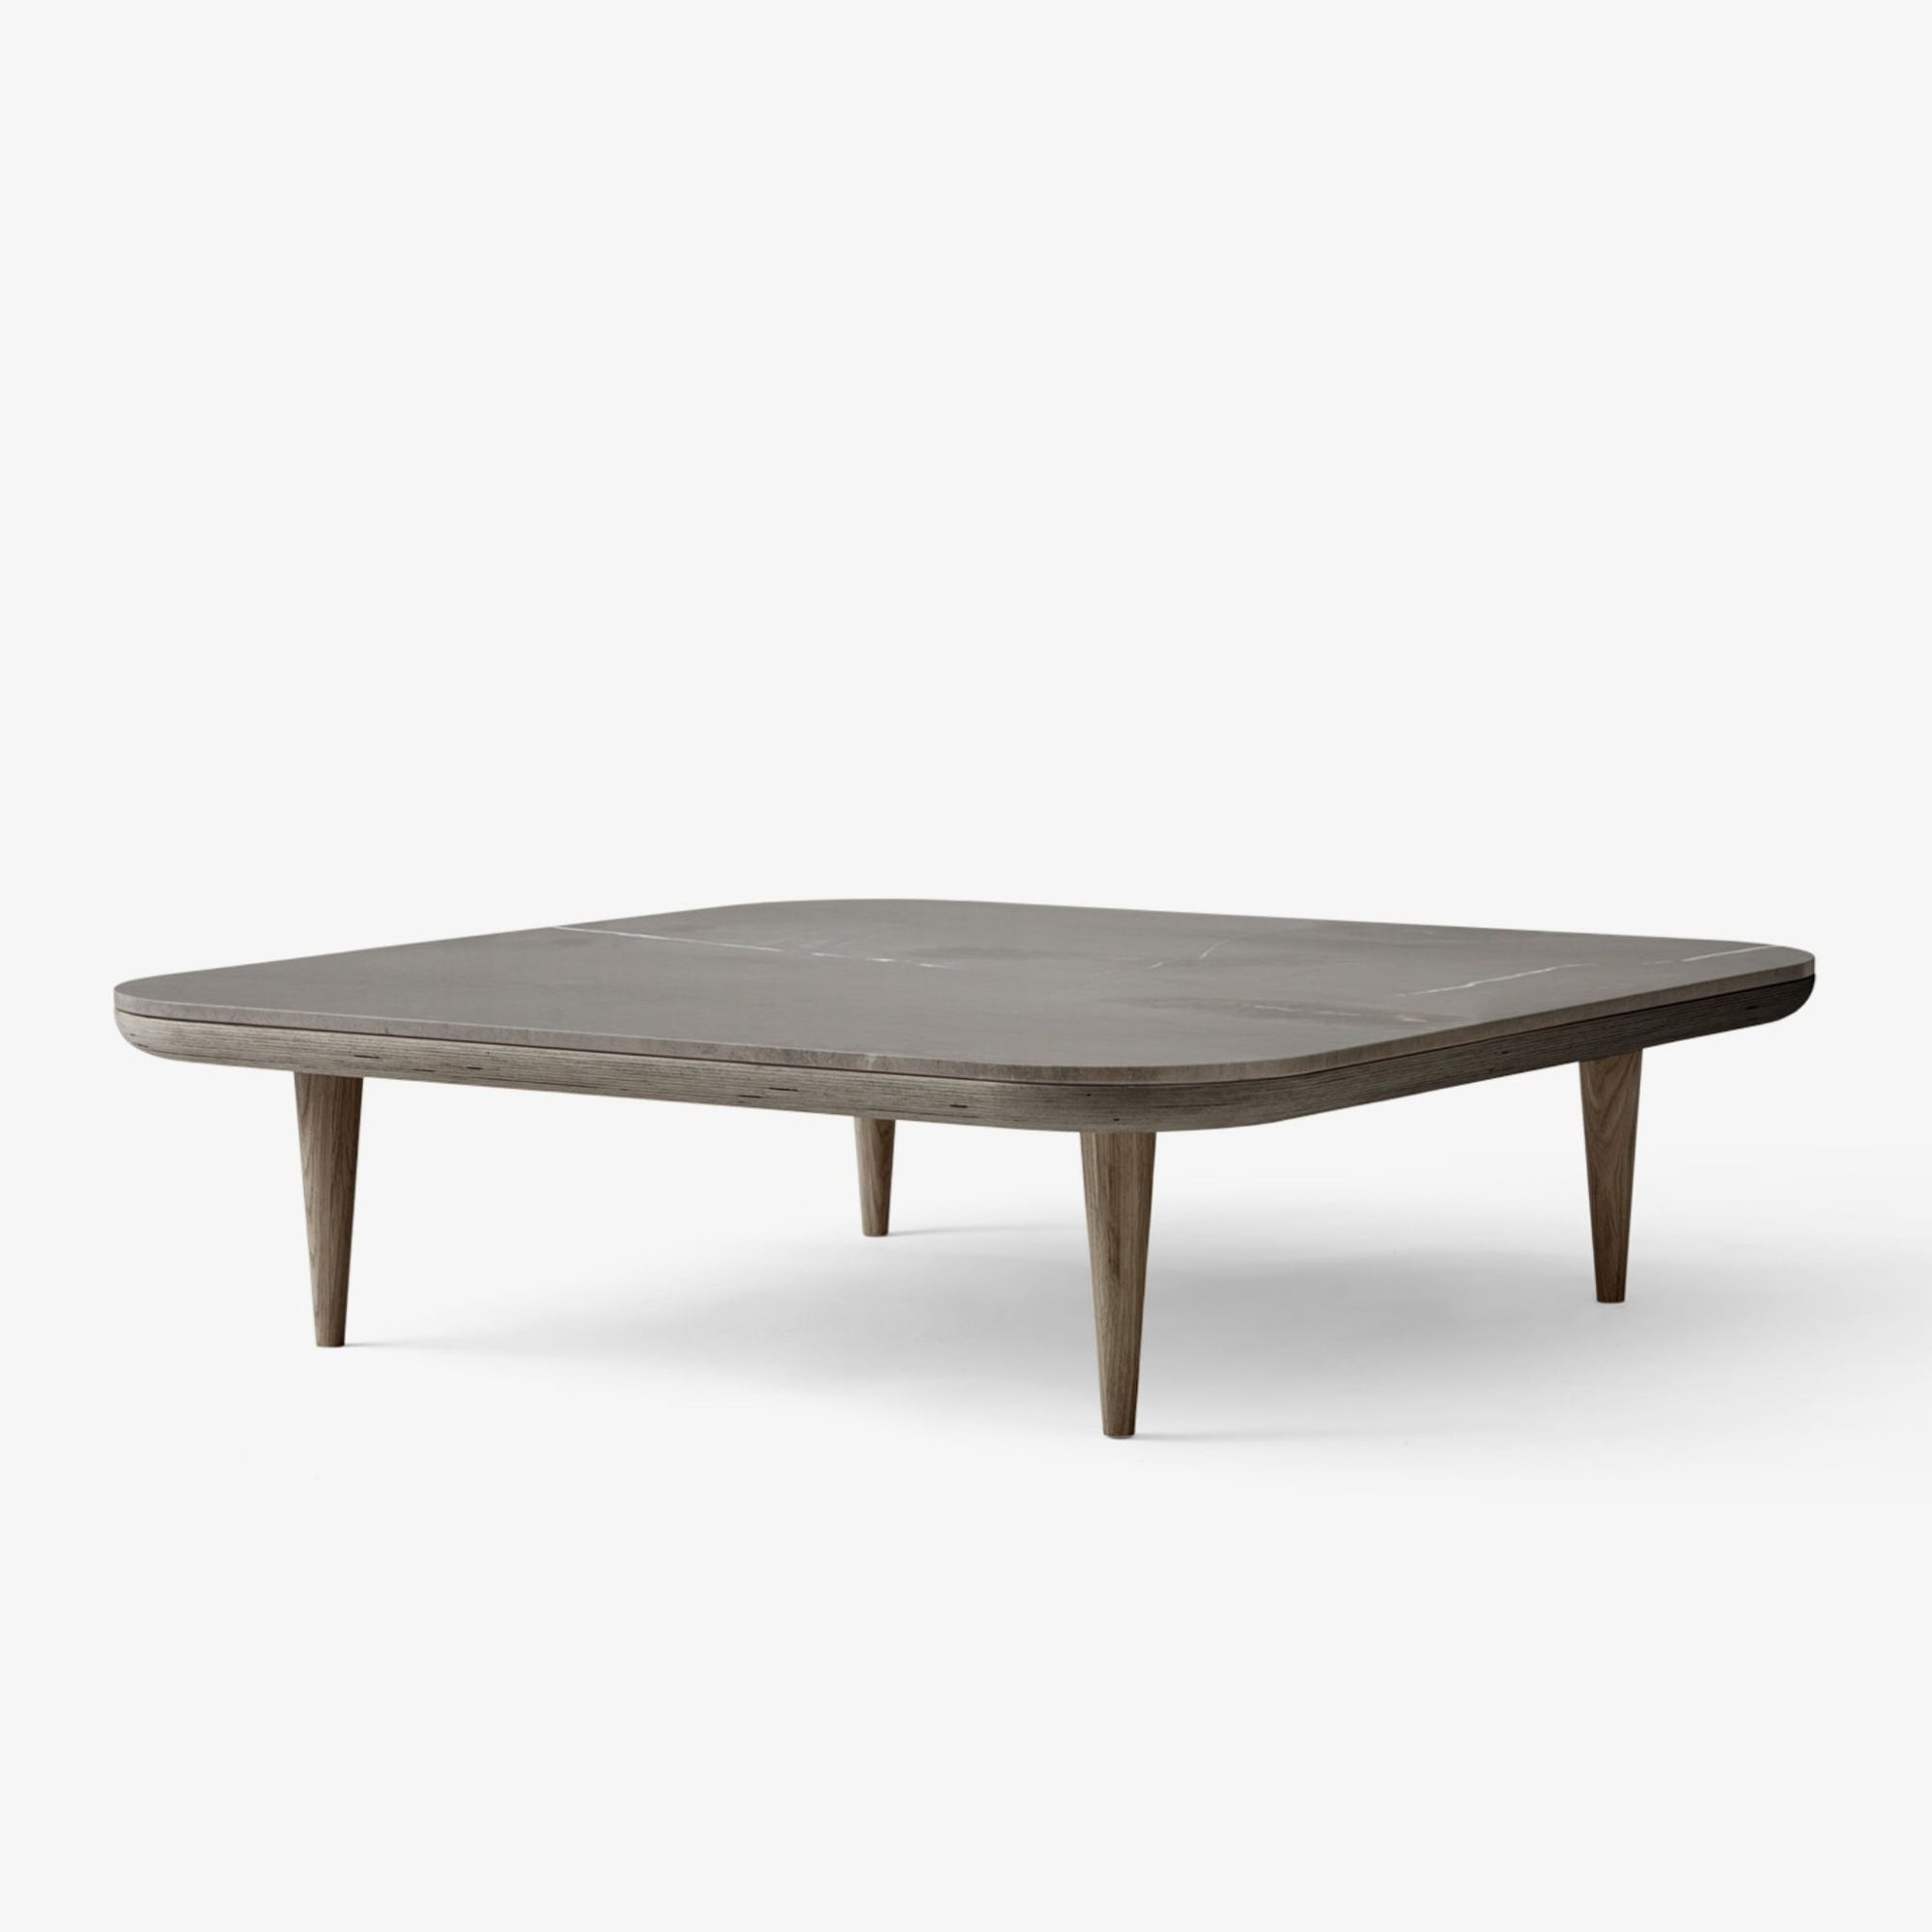 &Tradition SC11 Fly Coffee Table , Smoked Oiled Oak-Honed Azul Valverde Marble